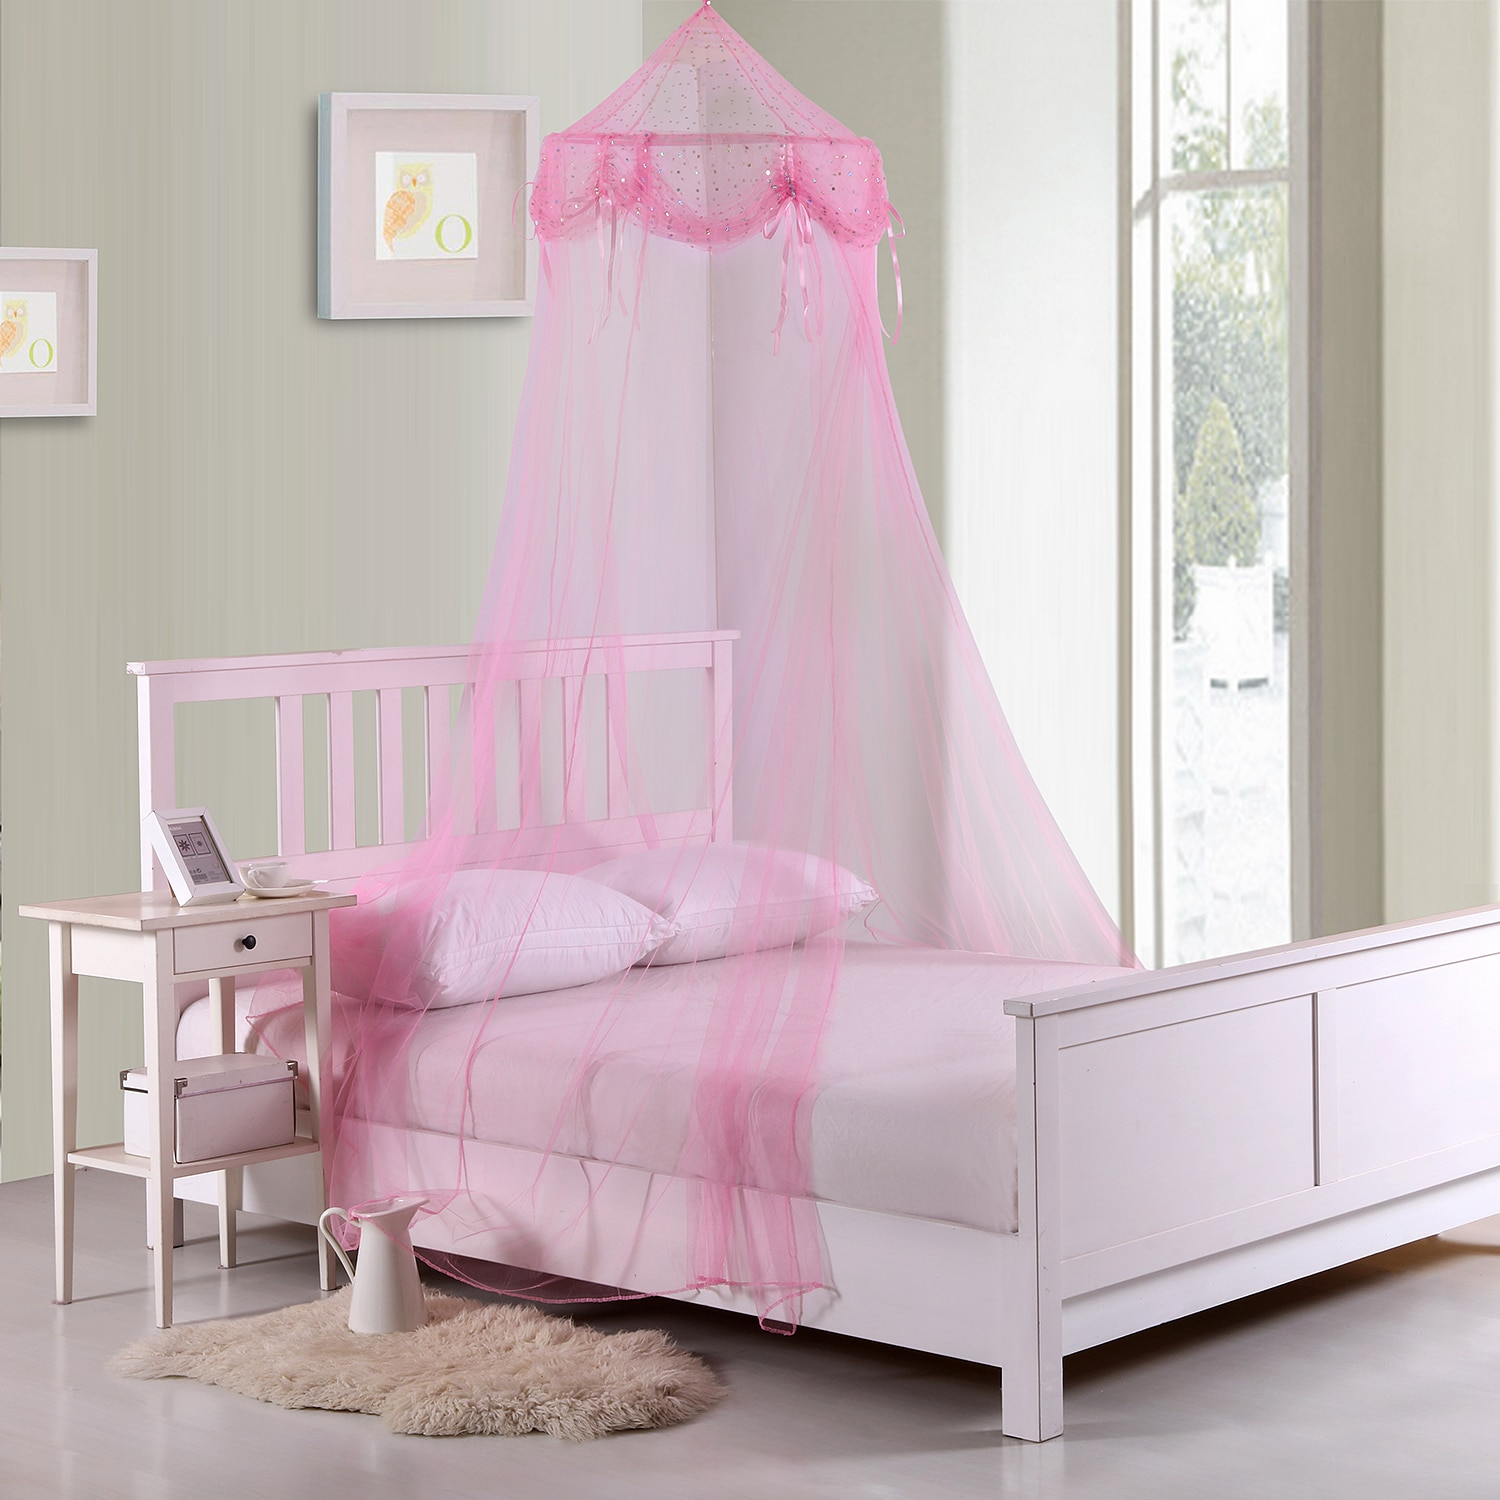 Buttons and Bows Kids' Collapsible Hoop Sheer Bed Canopy ...